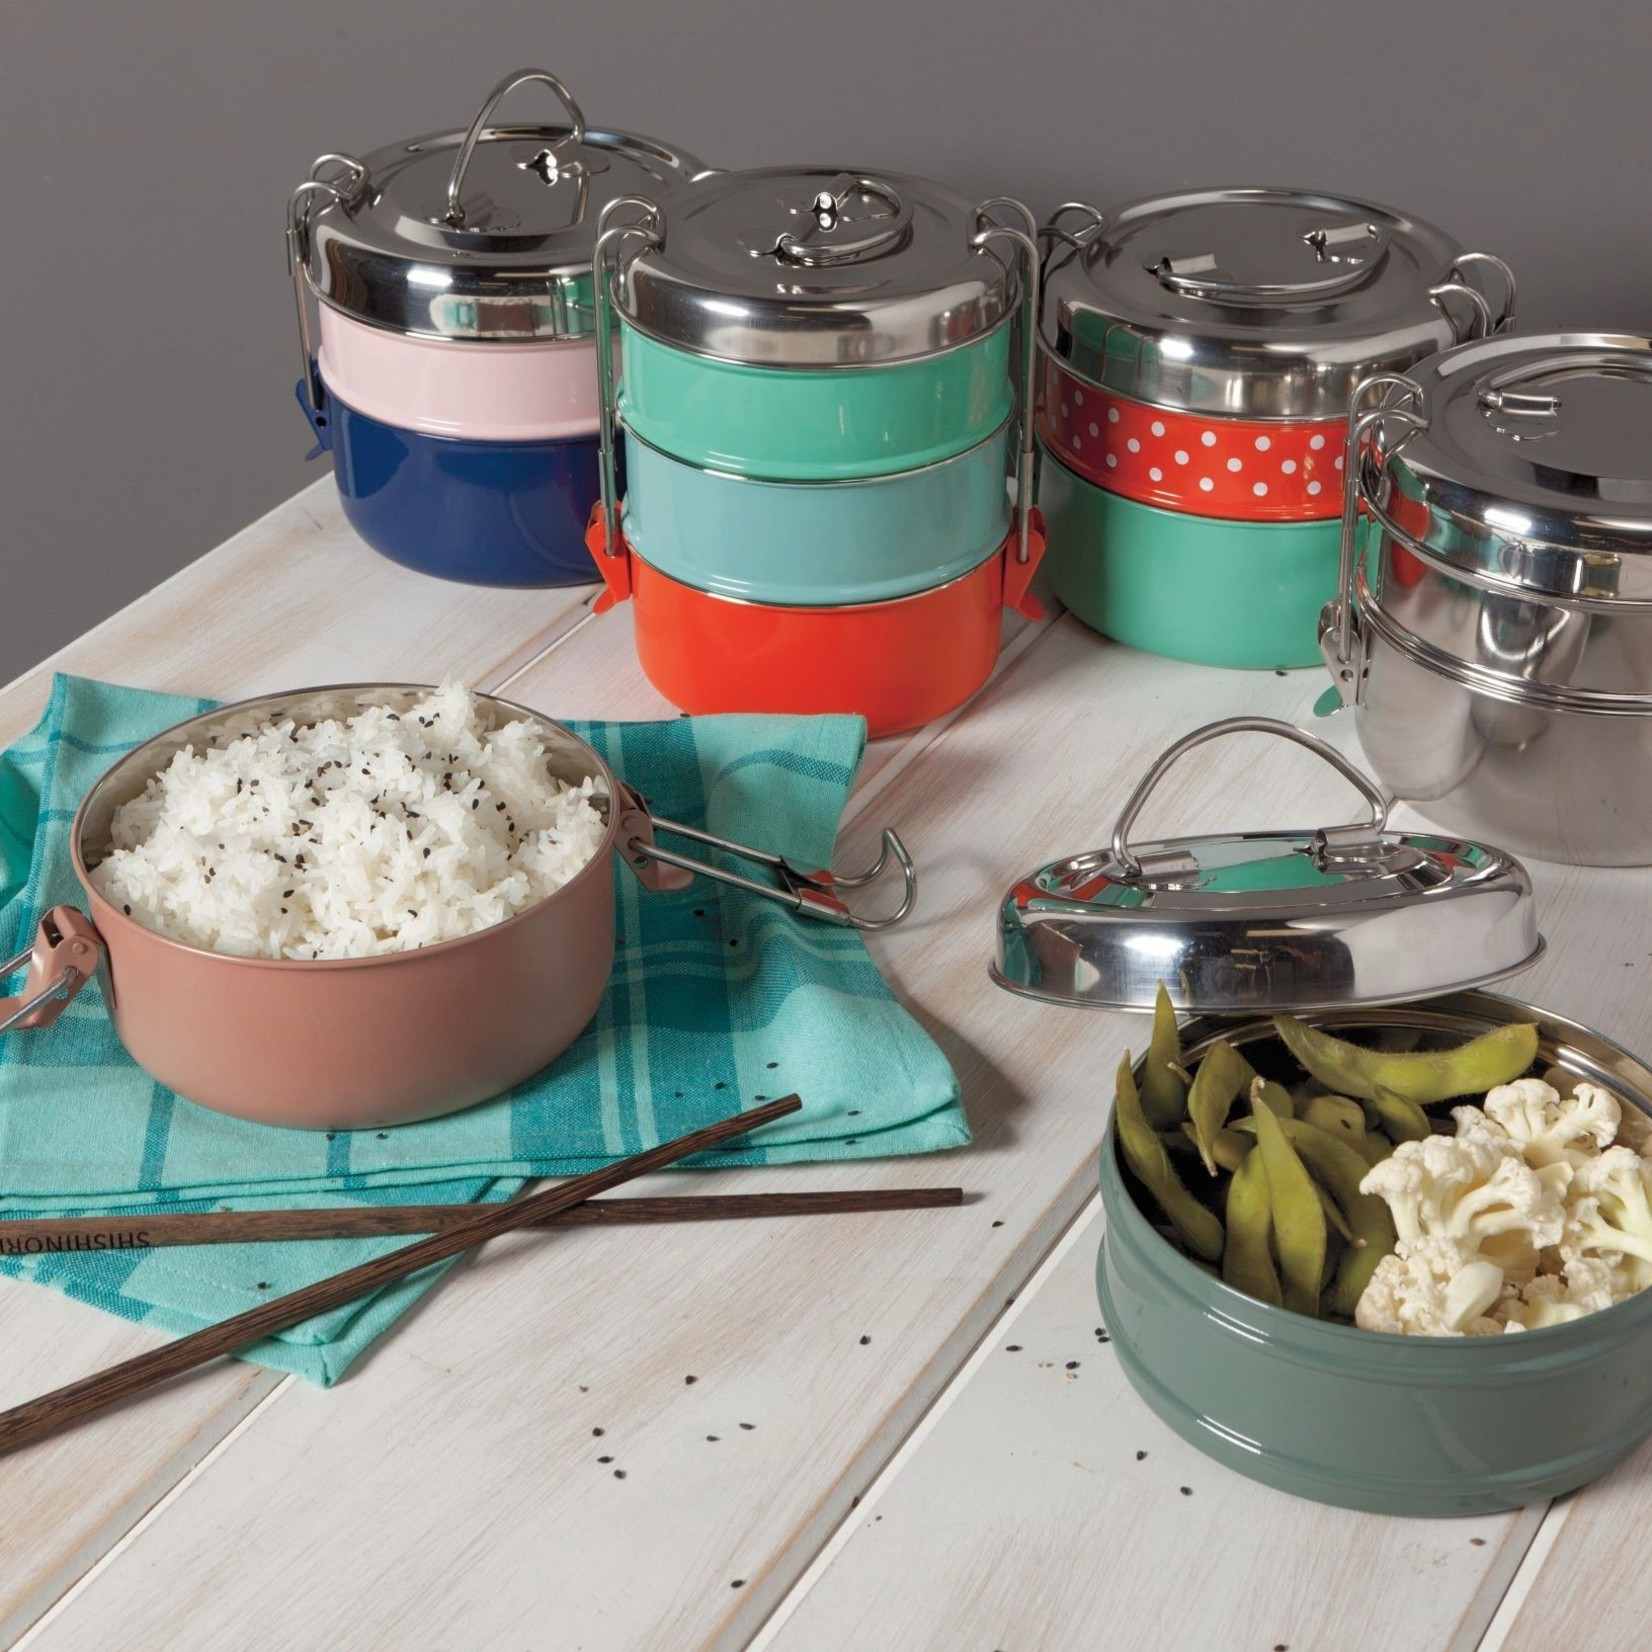 Heirloom Tiffin 2-Tiered Food Container